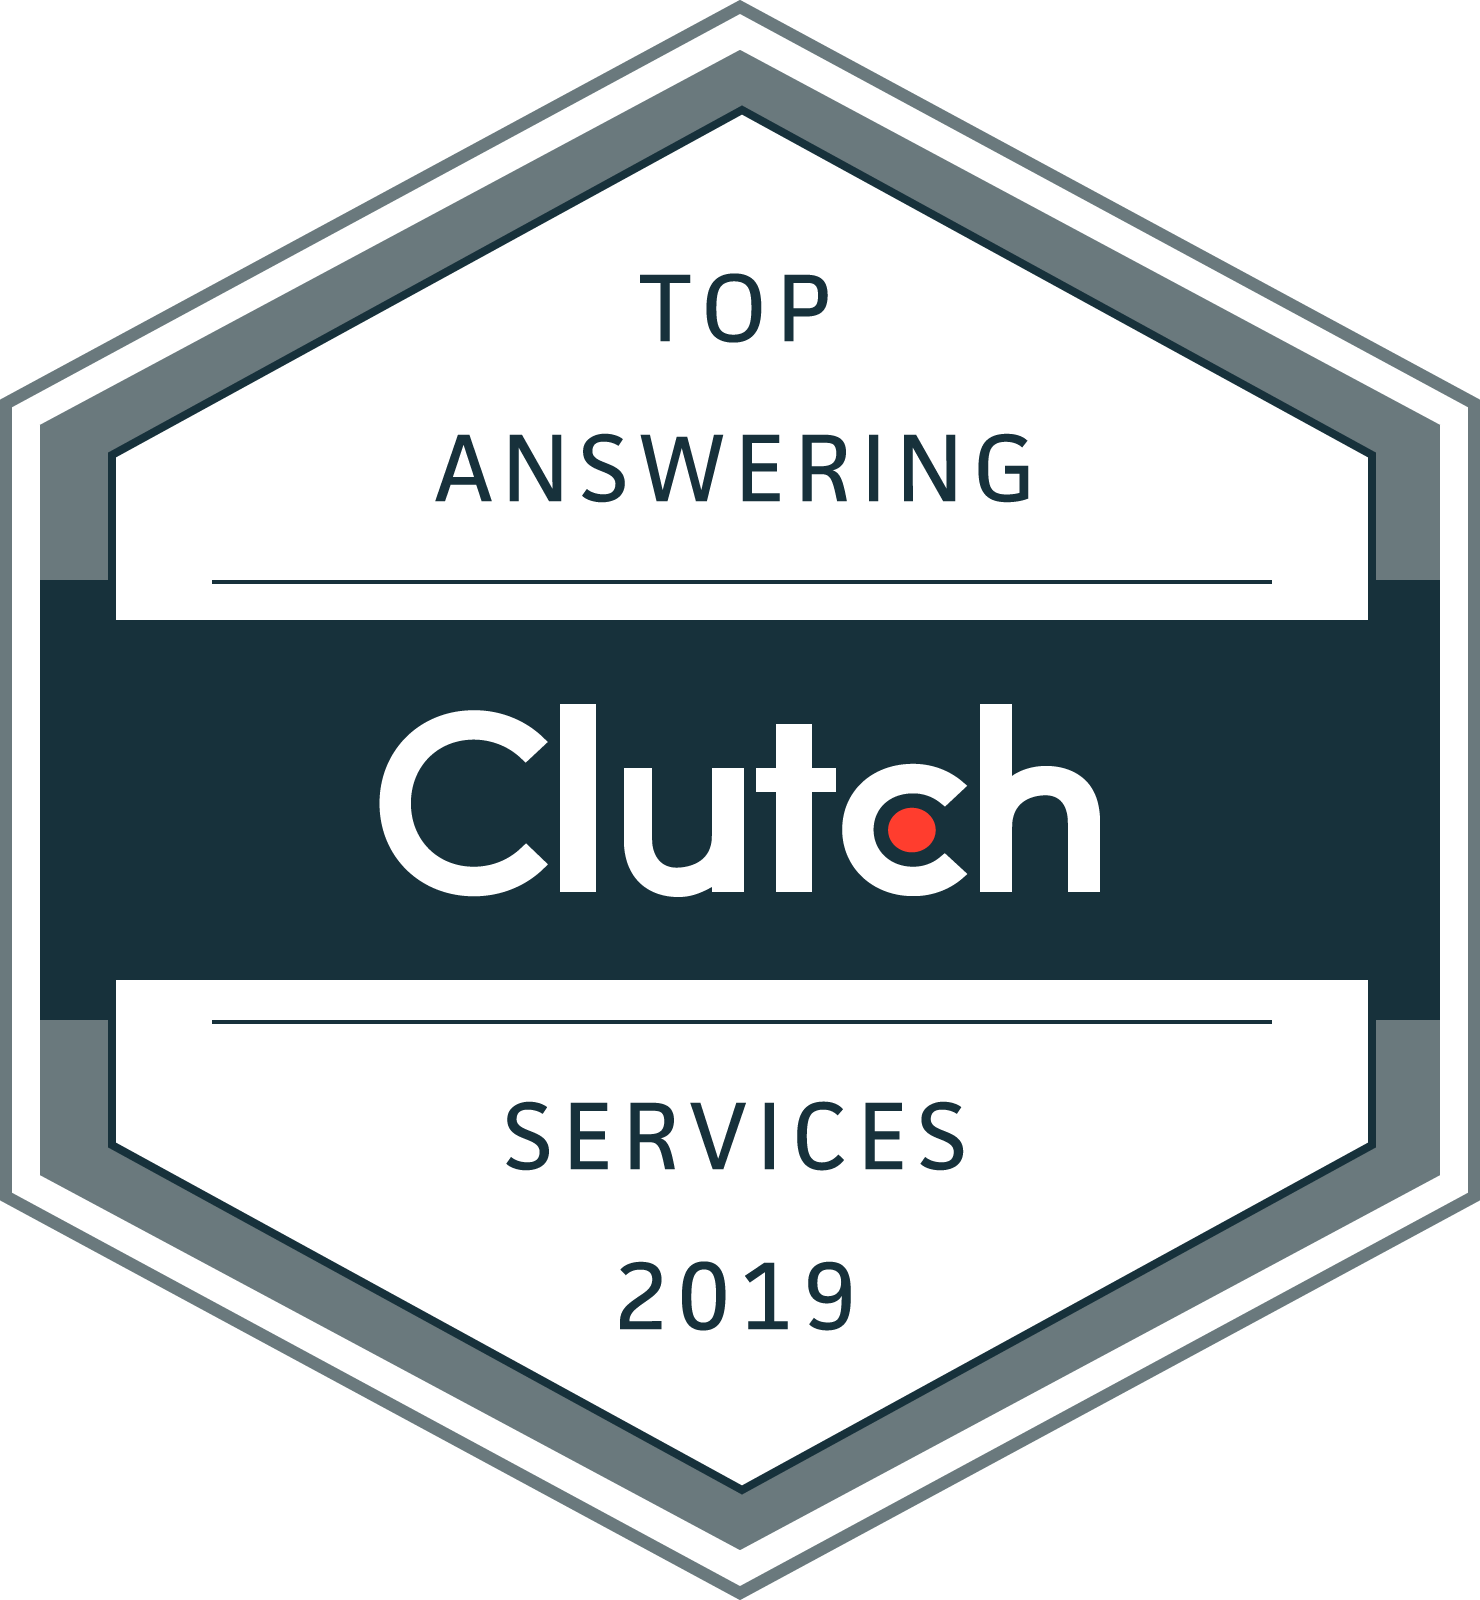 Clutch Answering Services logo